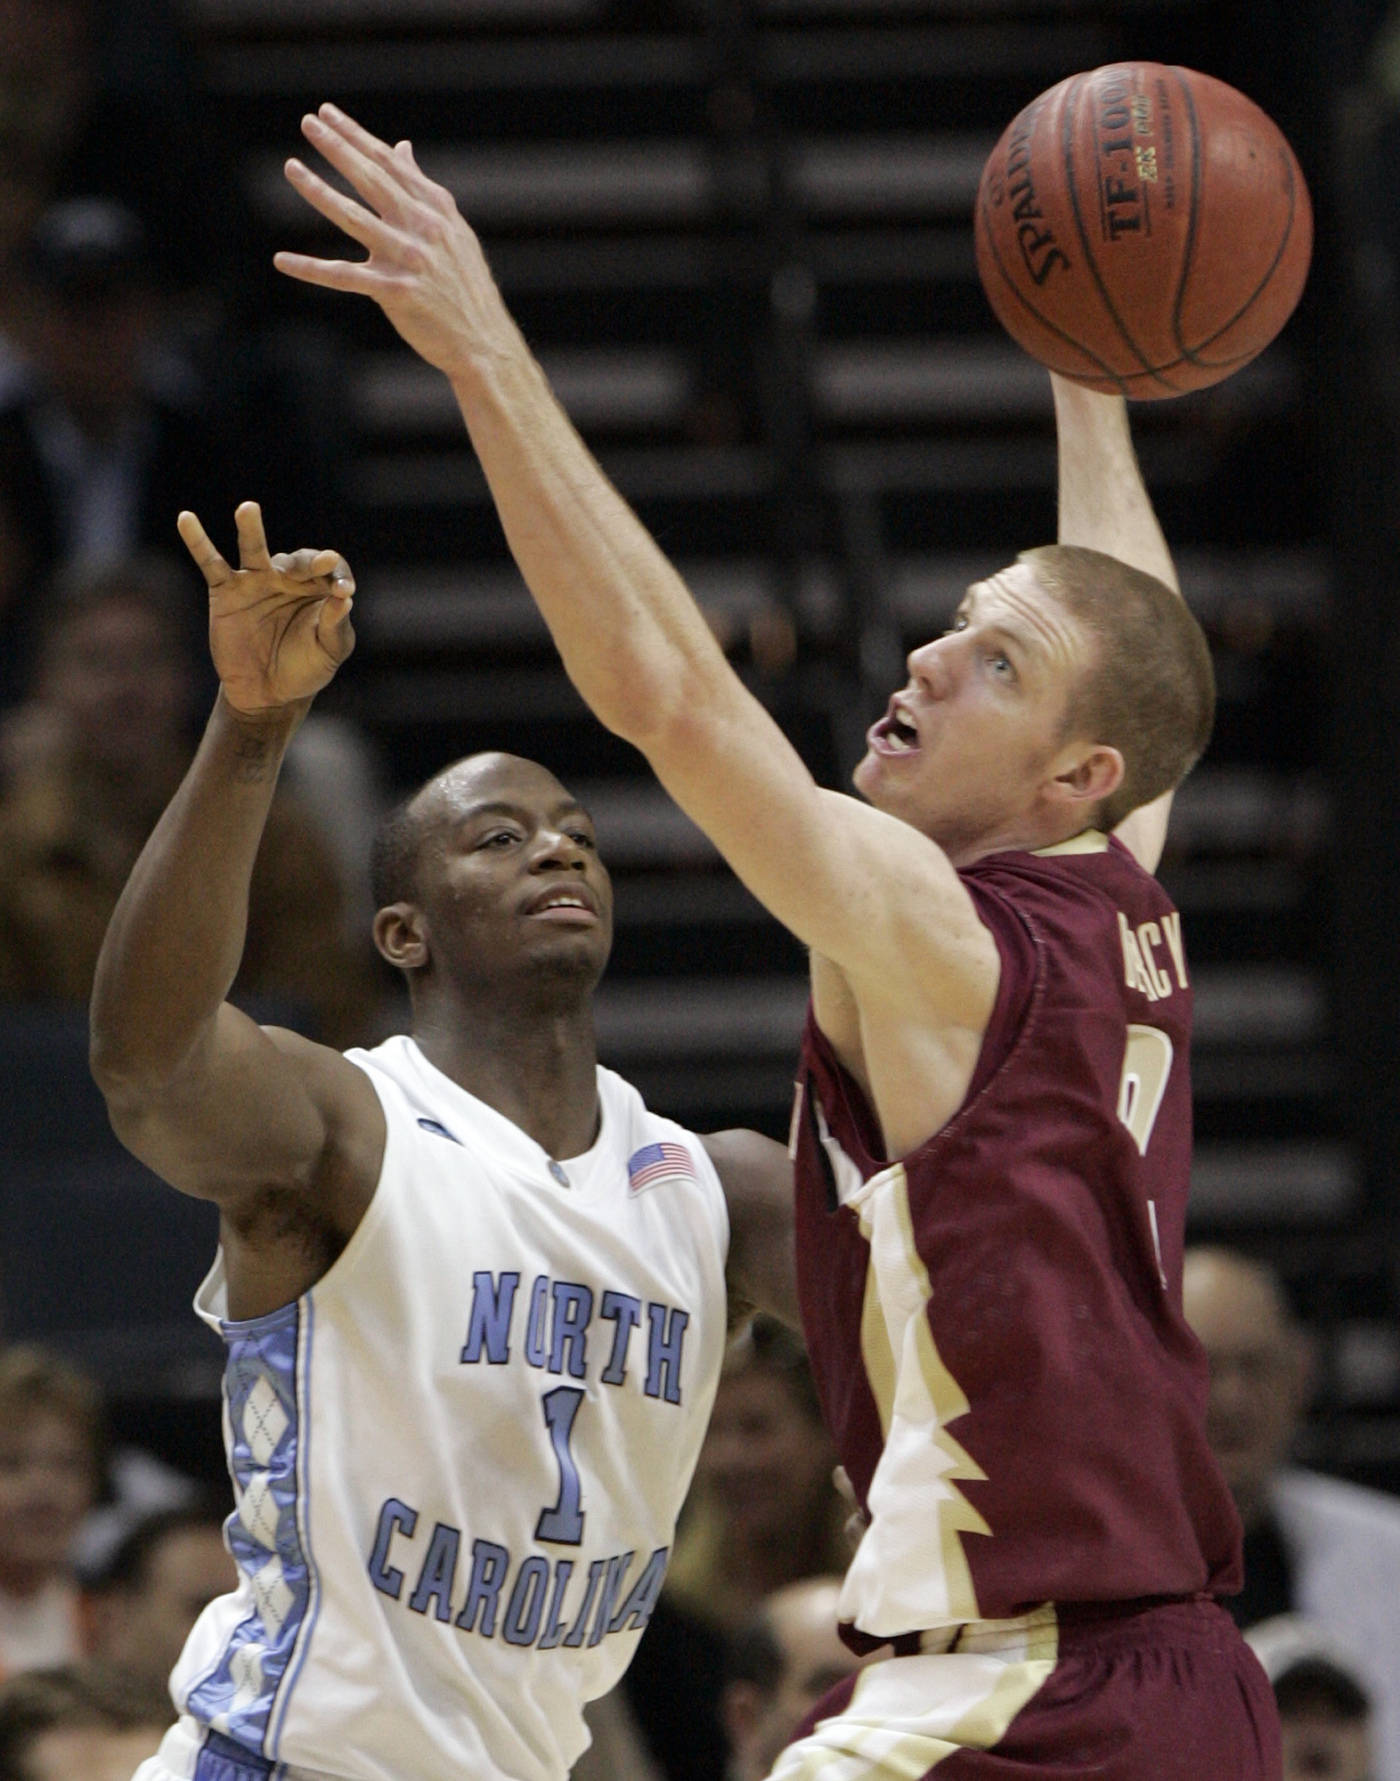 North Carolina's Marcus Ginyard and Jordan Demercy battle for a rebound in the first half. (AP Photo/Steve Helber)